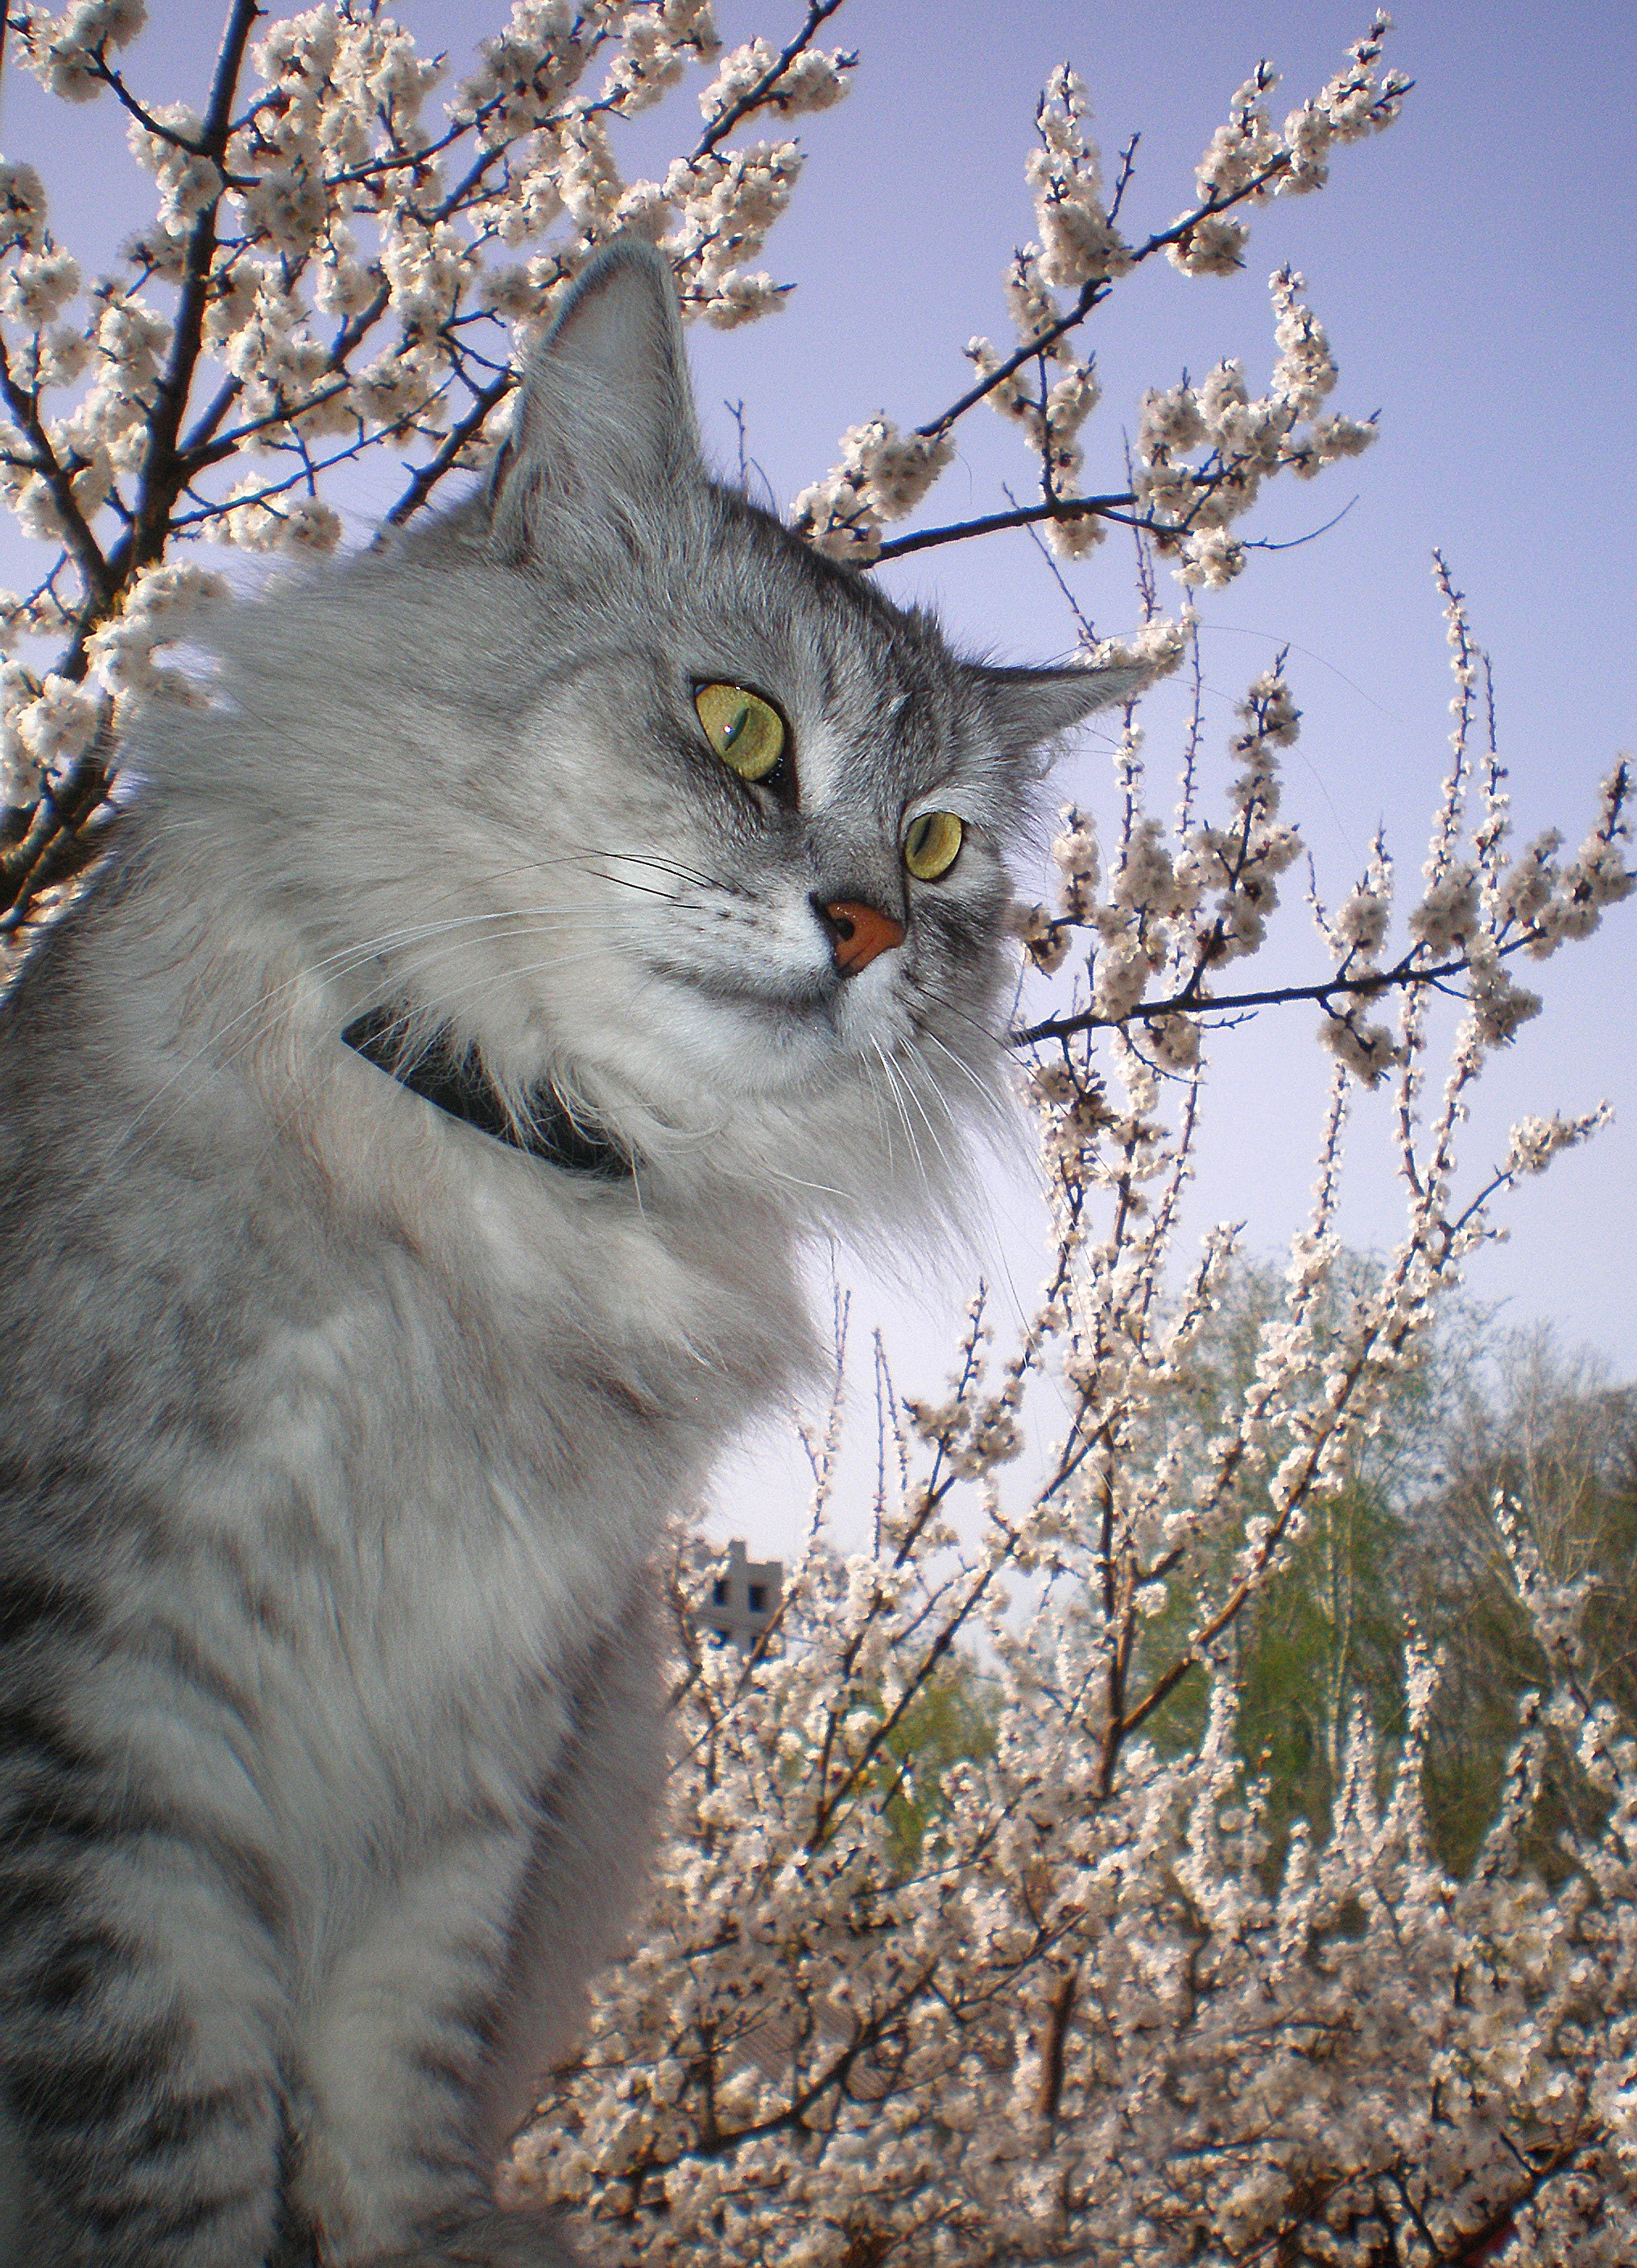 19337 download wallpaper Cats, Animals screensavers and pictures for free